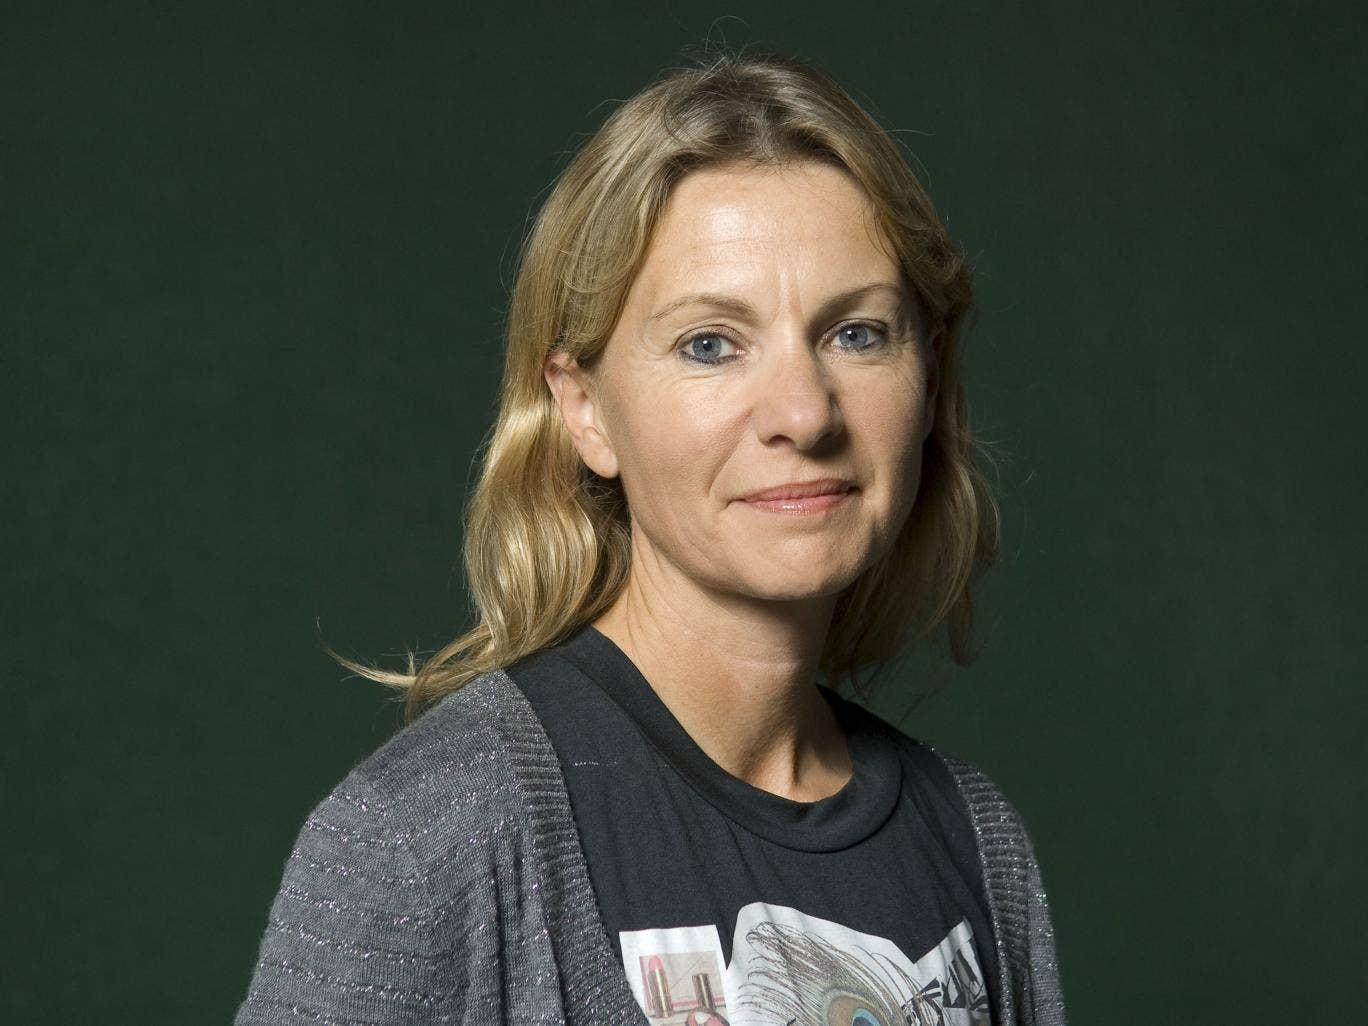 Kate Mosse is chair of the Women's Prize for Fiction board